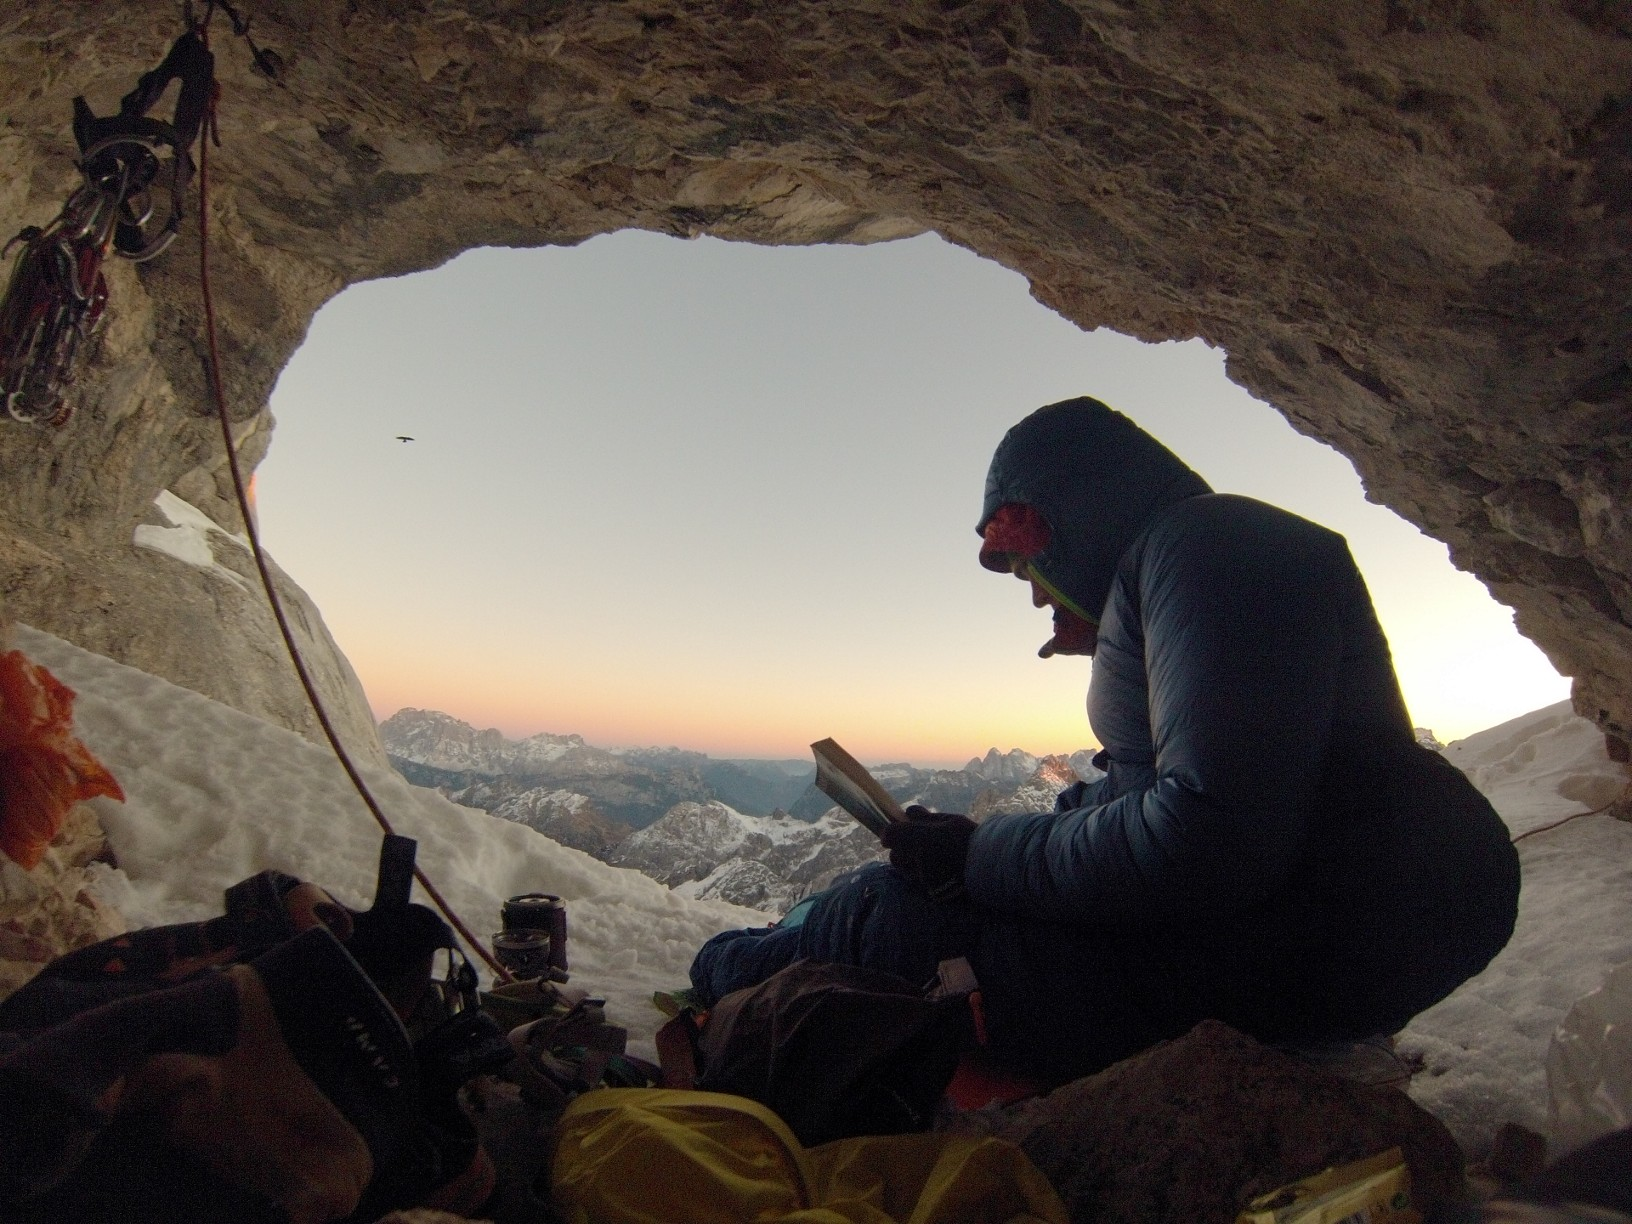 Ballard enjoys some reading on the comforts of a bivy ledge during his rope-solo of the Gogna Route (5.10, 800m) on Marmolada Punta Rocca (3309m), Dolomites, Italy. [Photo] Tom Ballard